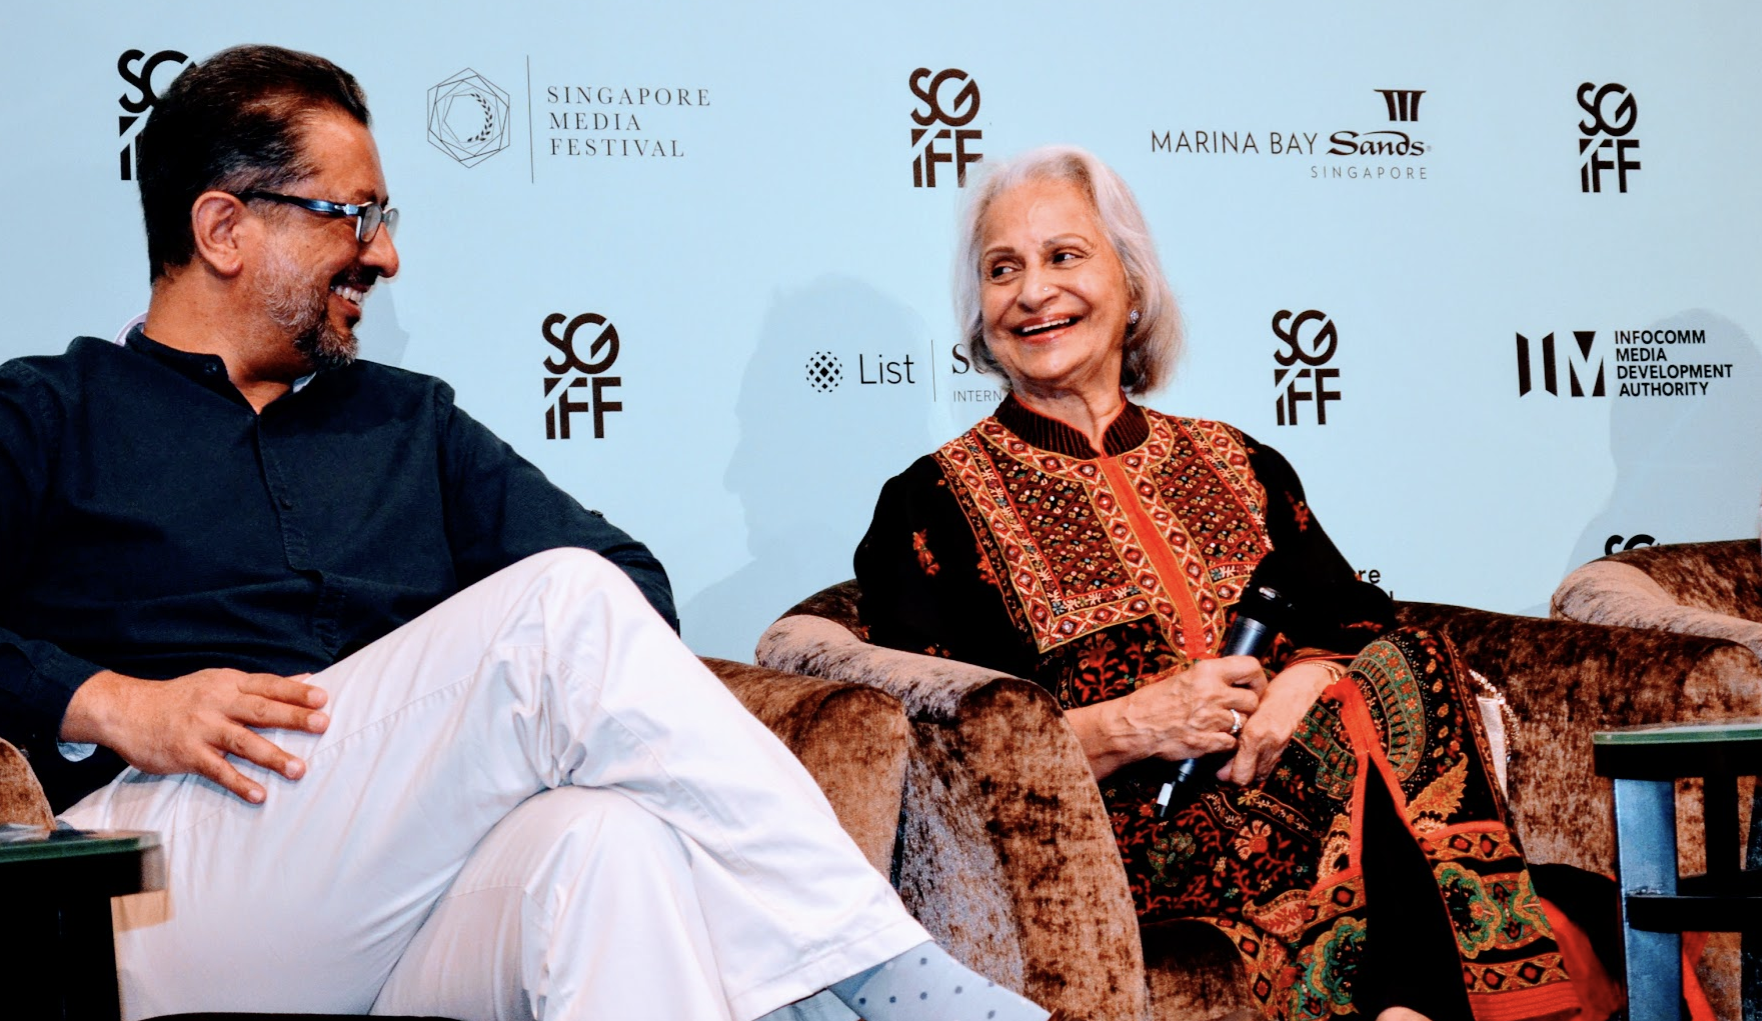 Waheeda Rehman with Anup Singh at the Singapore International Film Festival (SGIFF) Photo: Connected to India